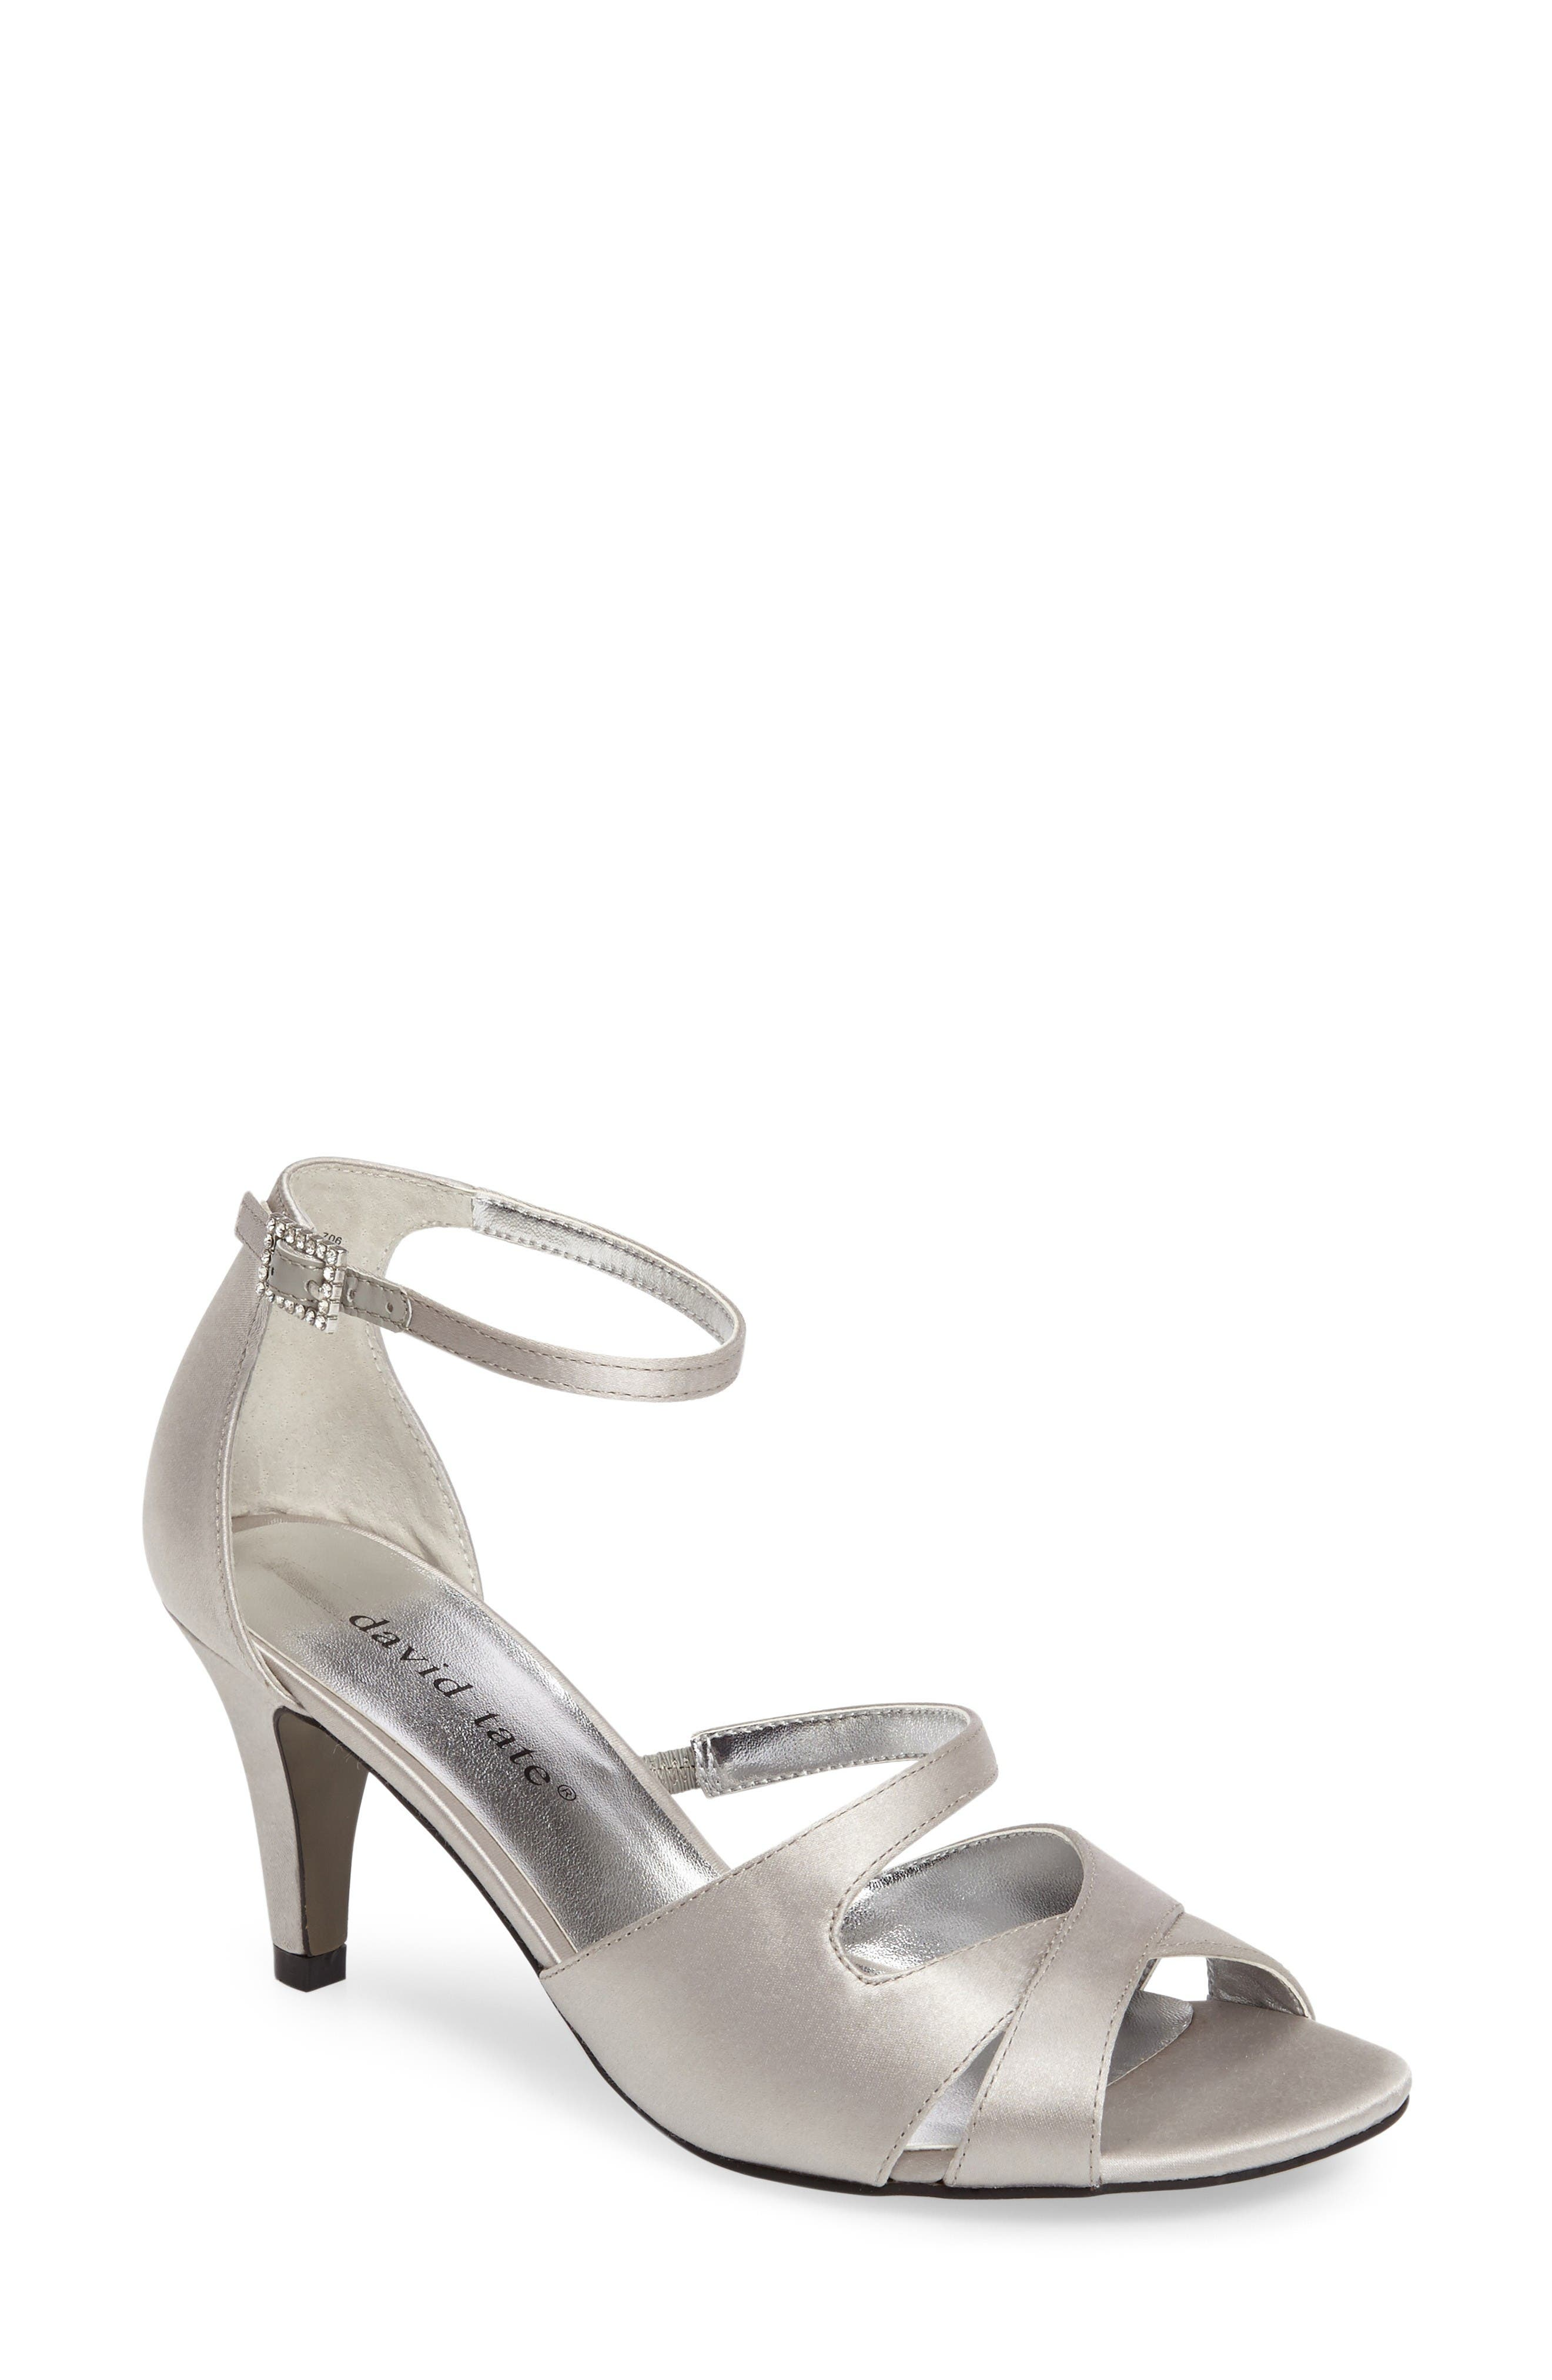 DAVID TATE Gaze Crystal Buckle Sandal